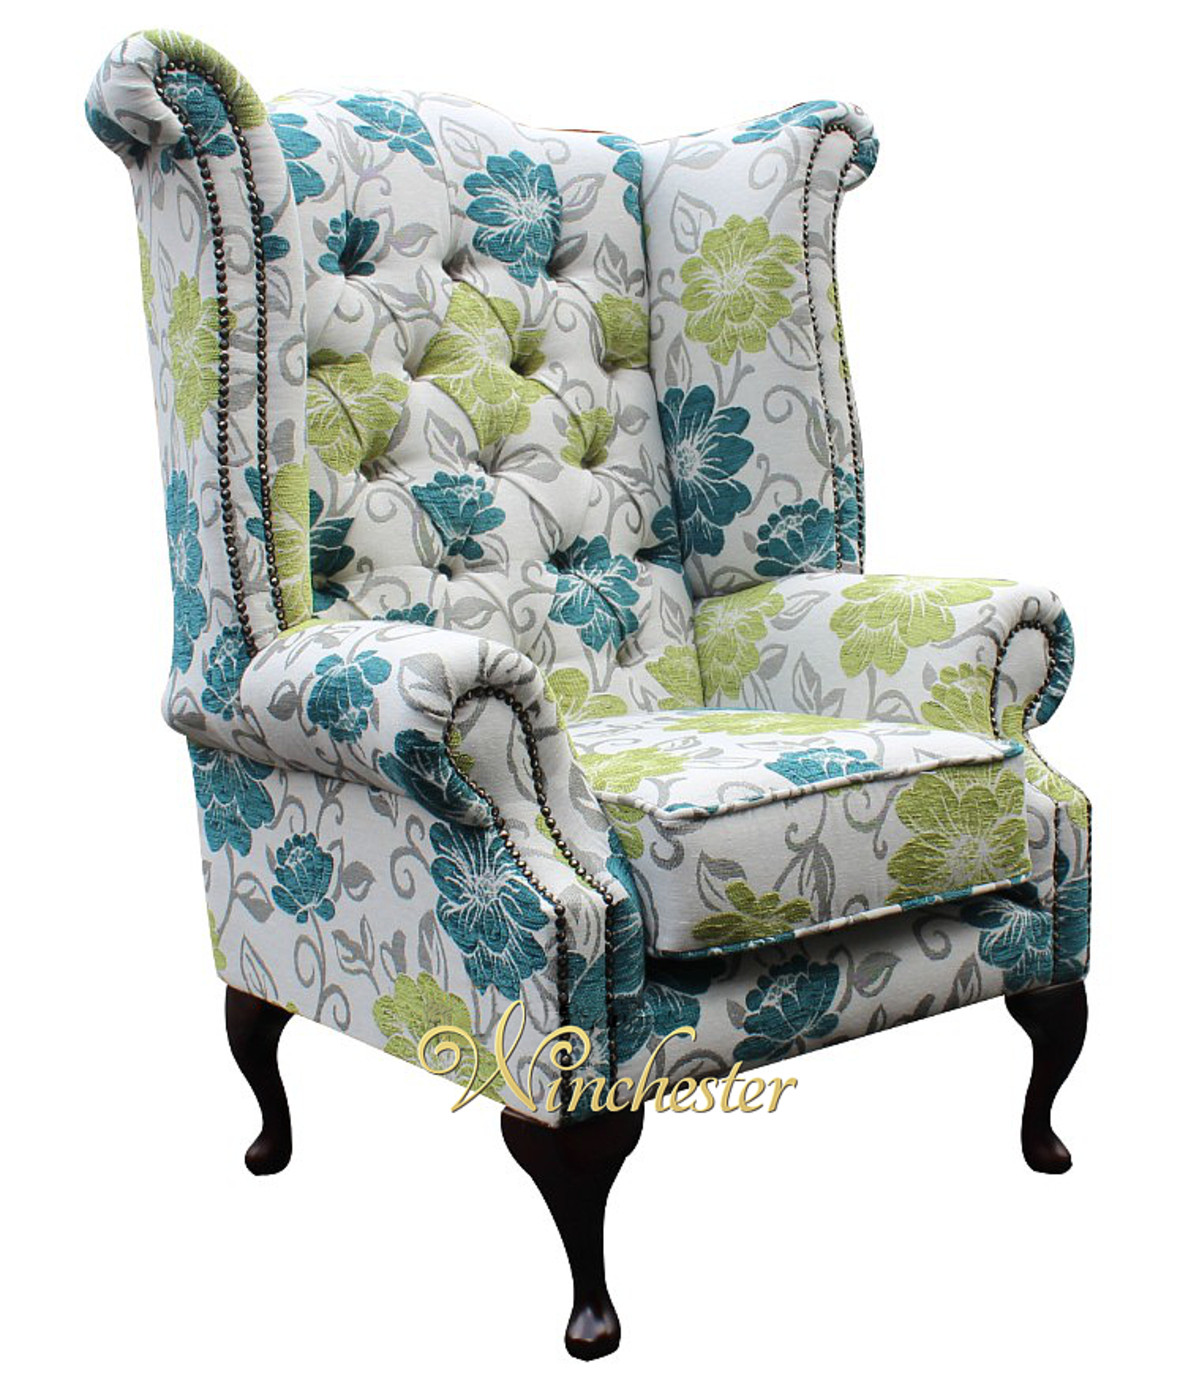 queen anne wing chair zero gravity chairs for sale chesterfield newby prince's high back floral summer teal